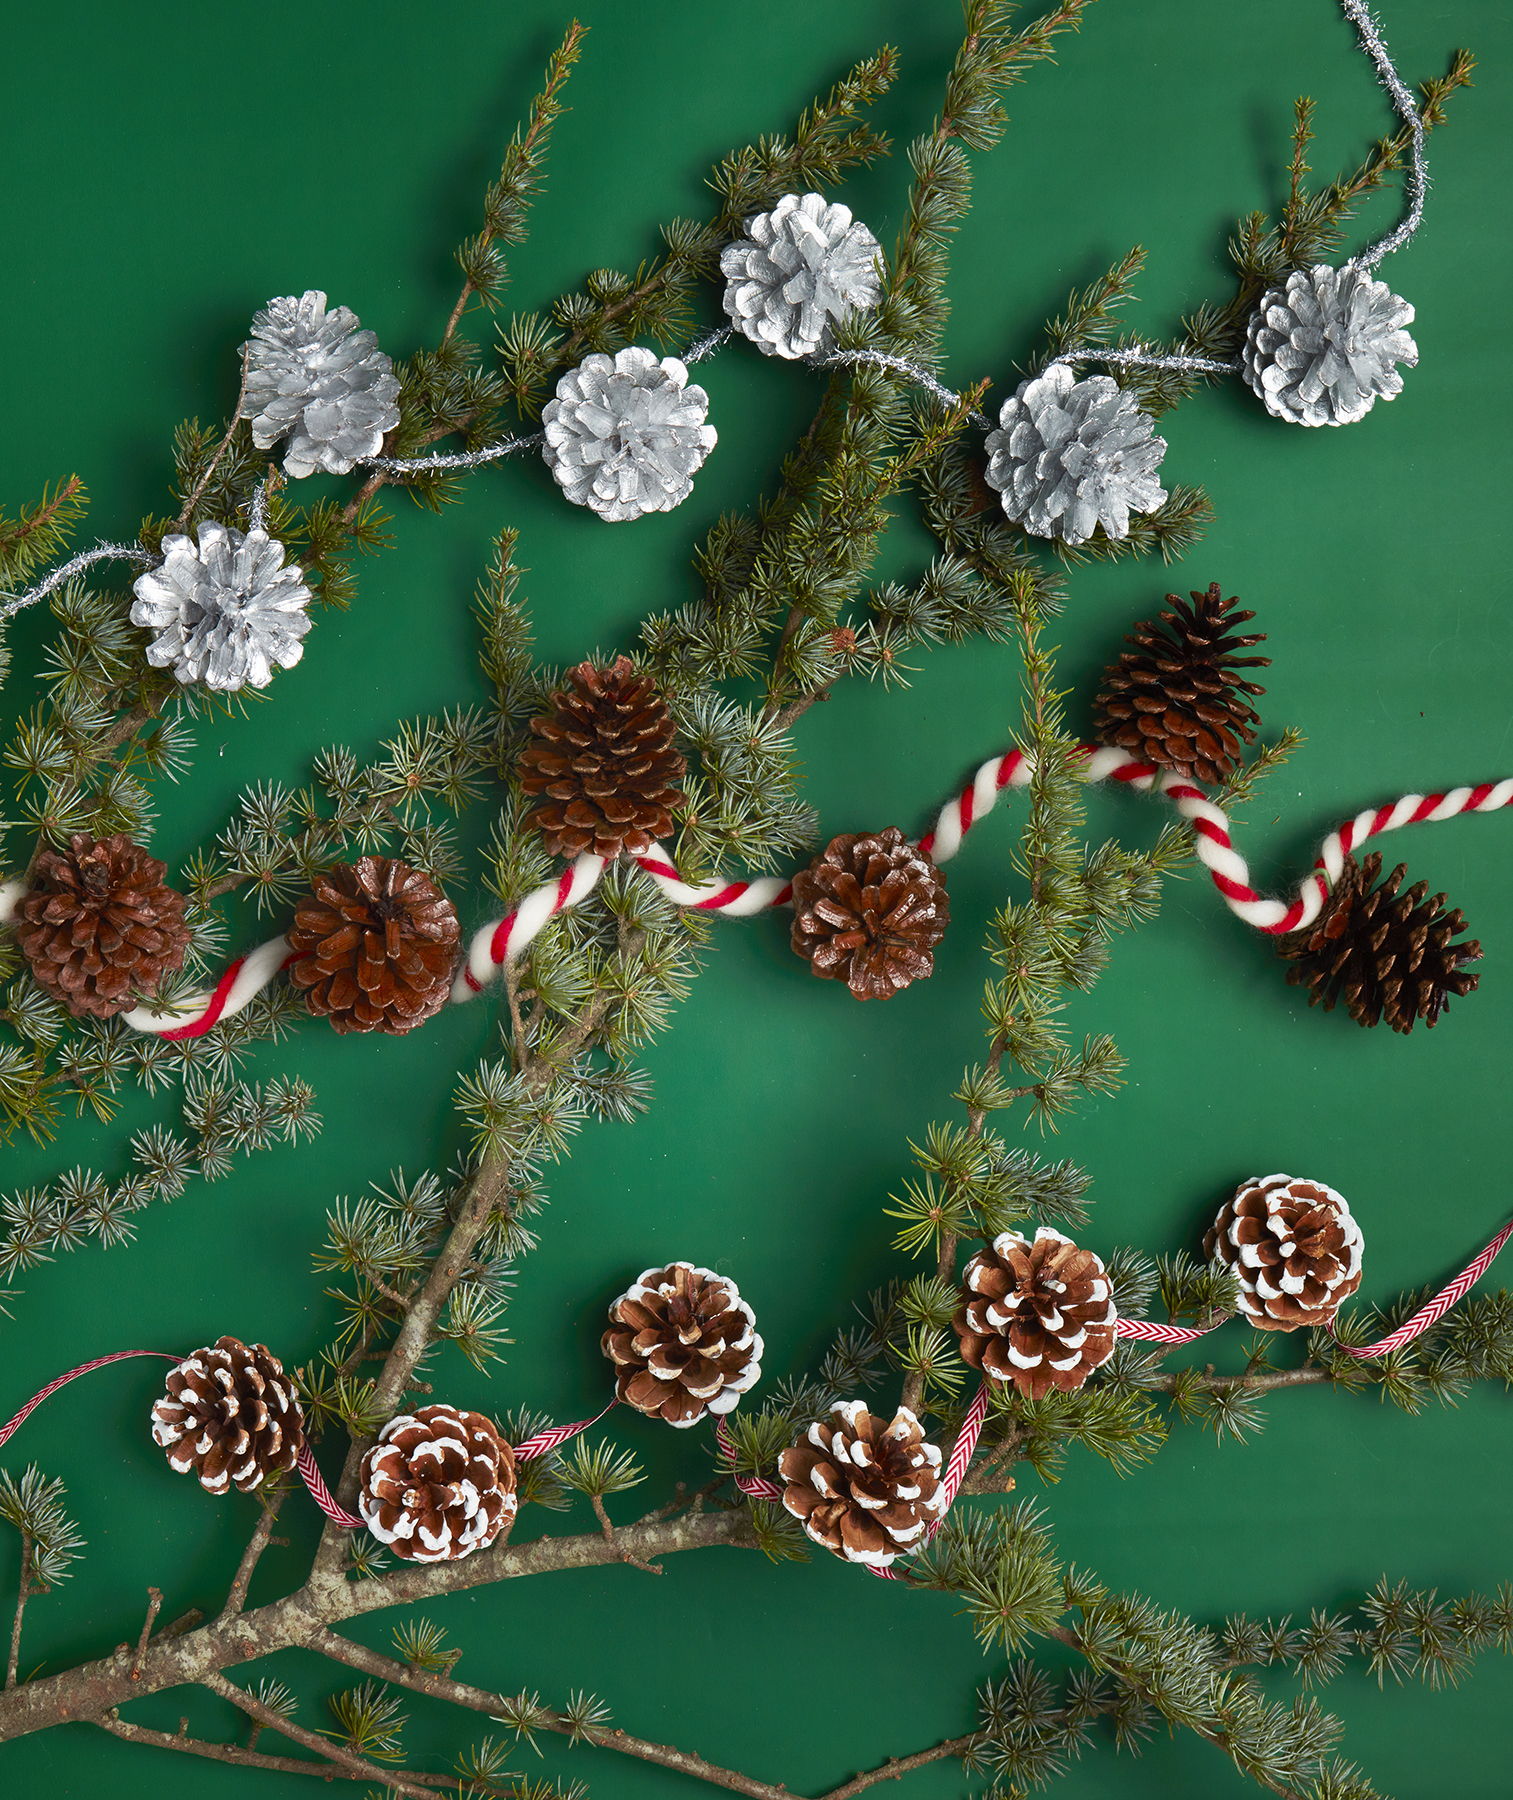 Christmas crafts ideas - Pinecone Garland